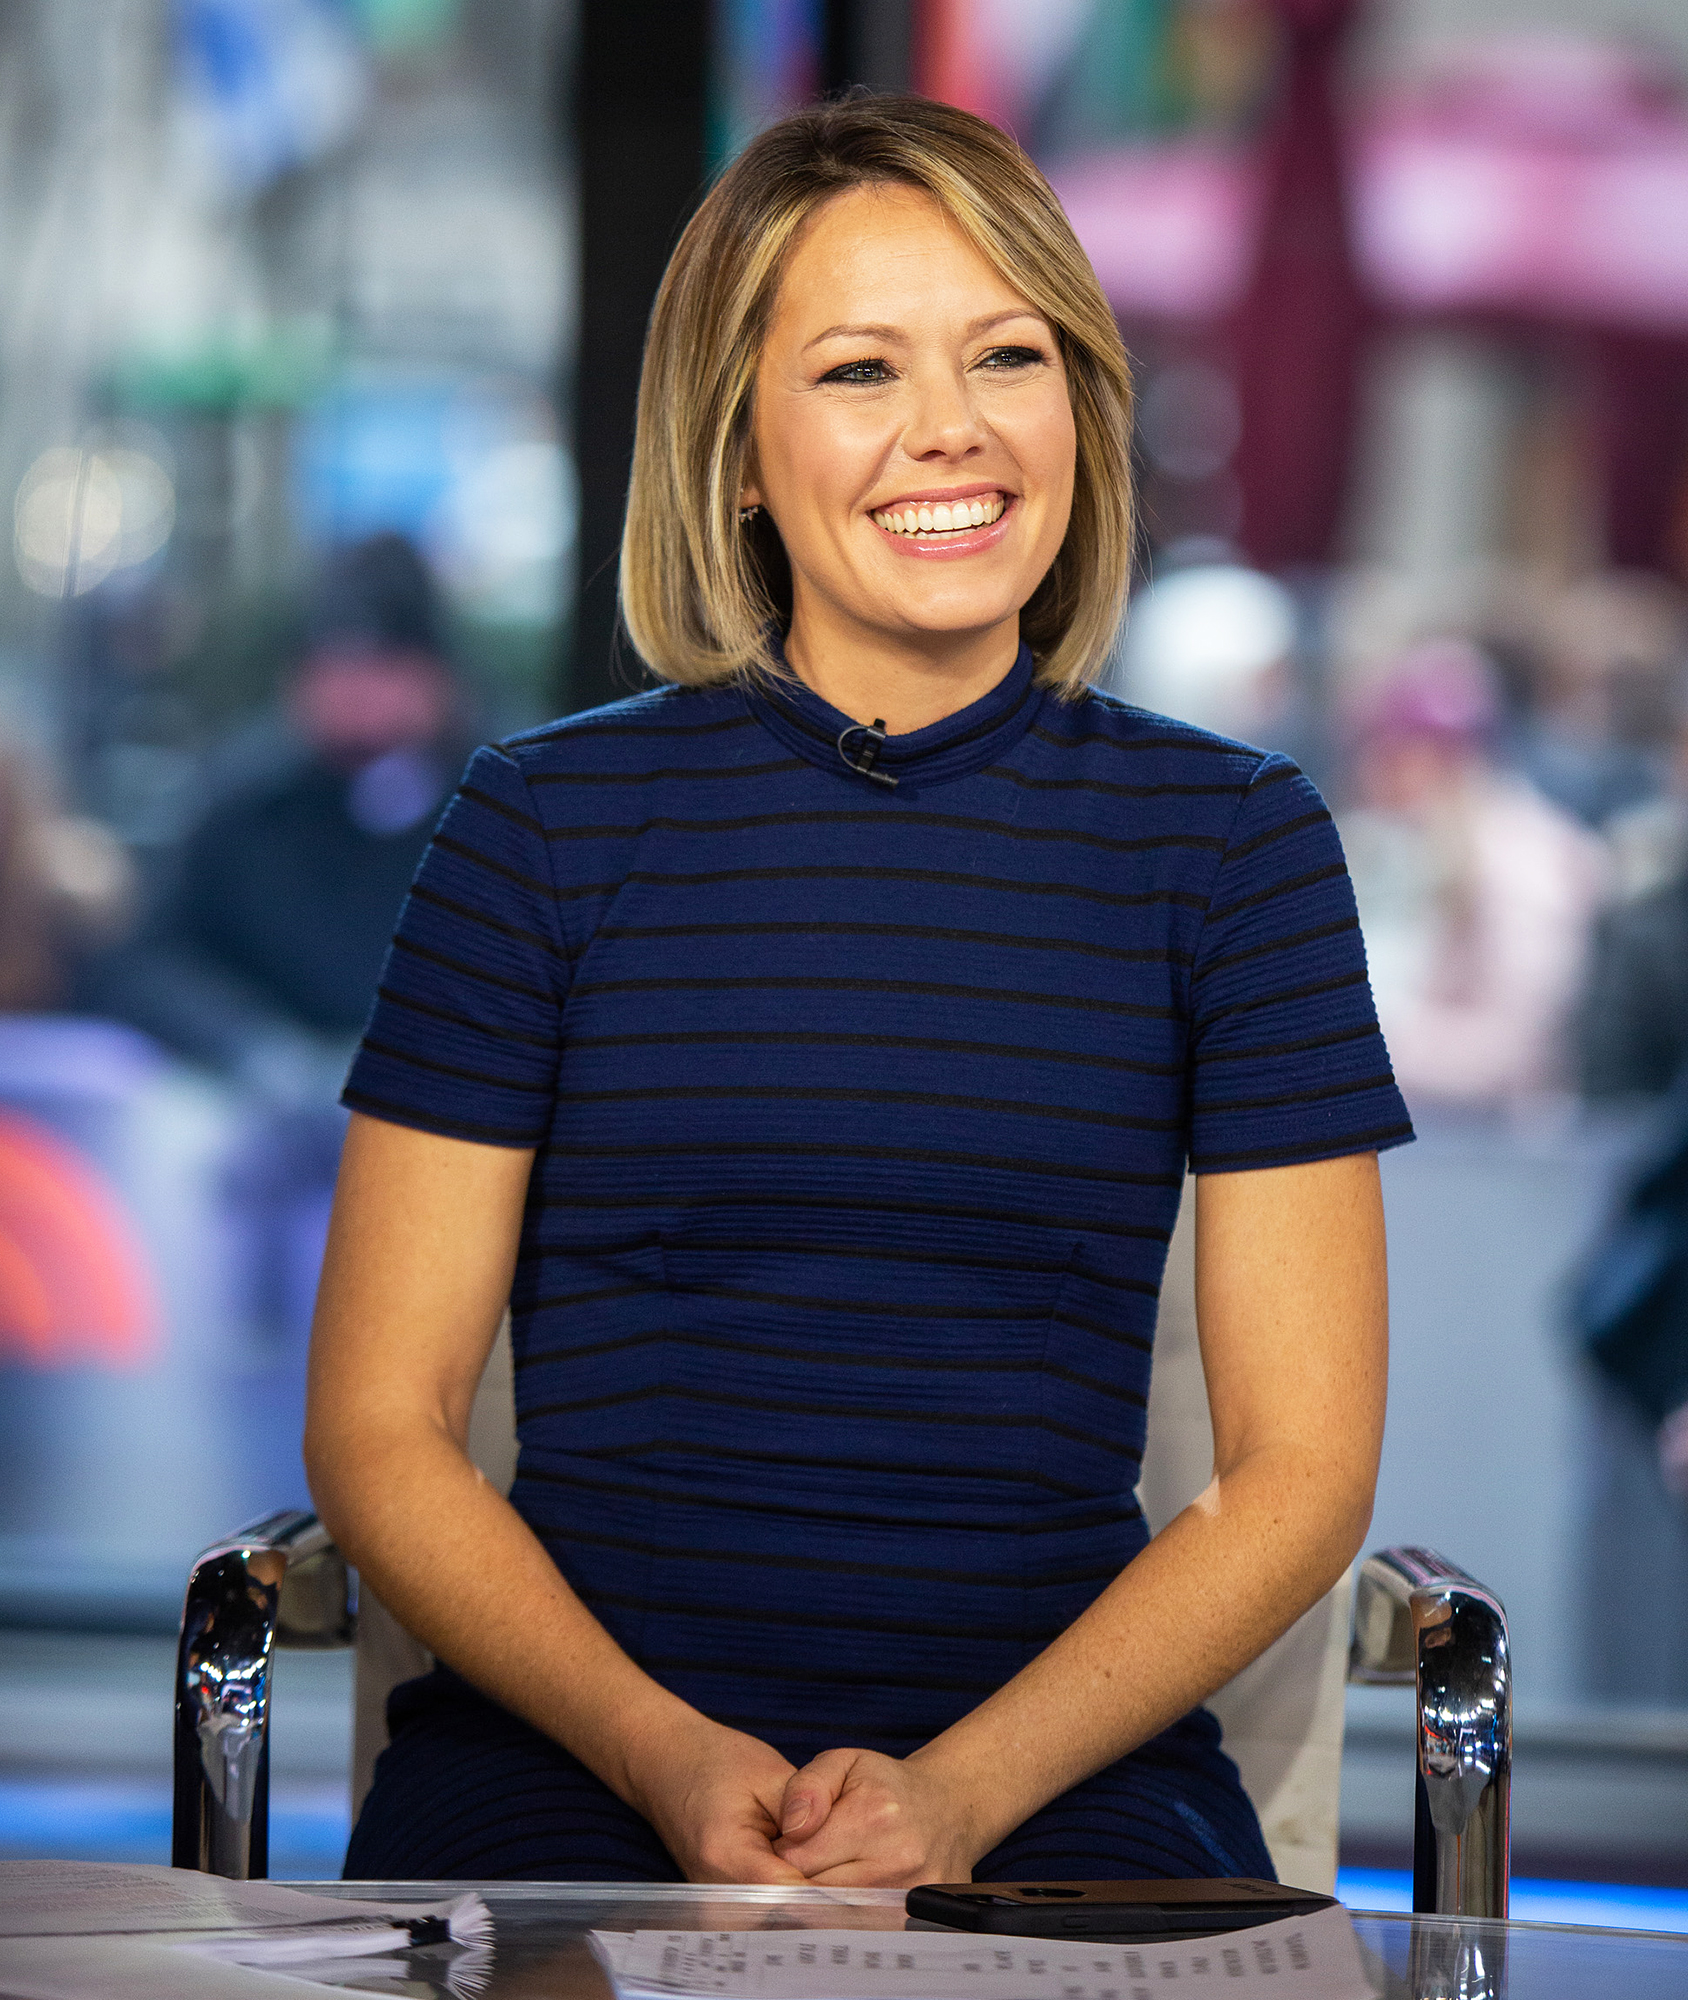 """Dylan Dreyer Stars Who Struggled Conceive - """"I wake up to just massive bleeding, to the point where I'm standing in the shower and it just won't stop,"""" the weather anchor said of her miscarriage on the Today show in April 2019. """"I tell [my husband], 'I think I lost the baby,' and the first thing he said to me is, 'You didn't lost the baby. … You didn't do anything wrong.'"""""""